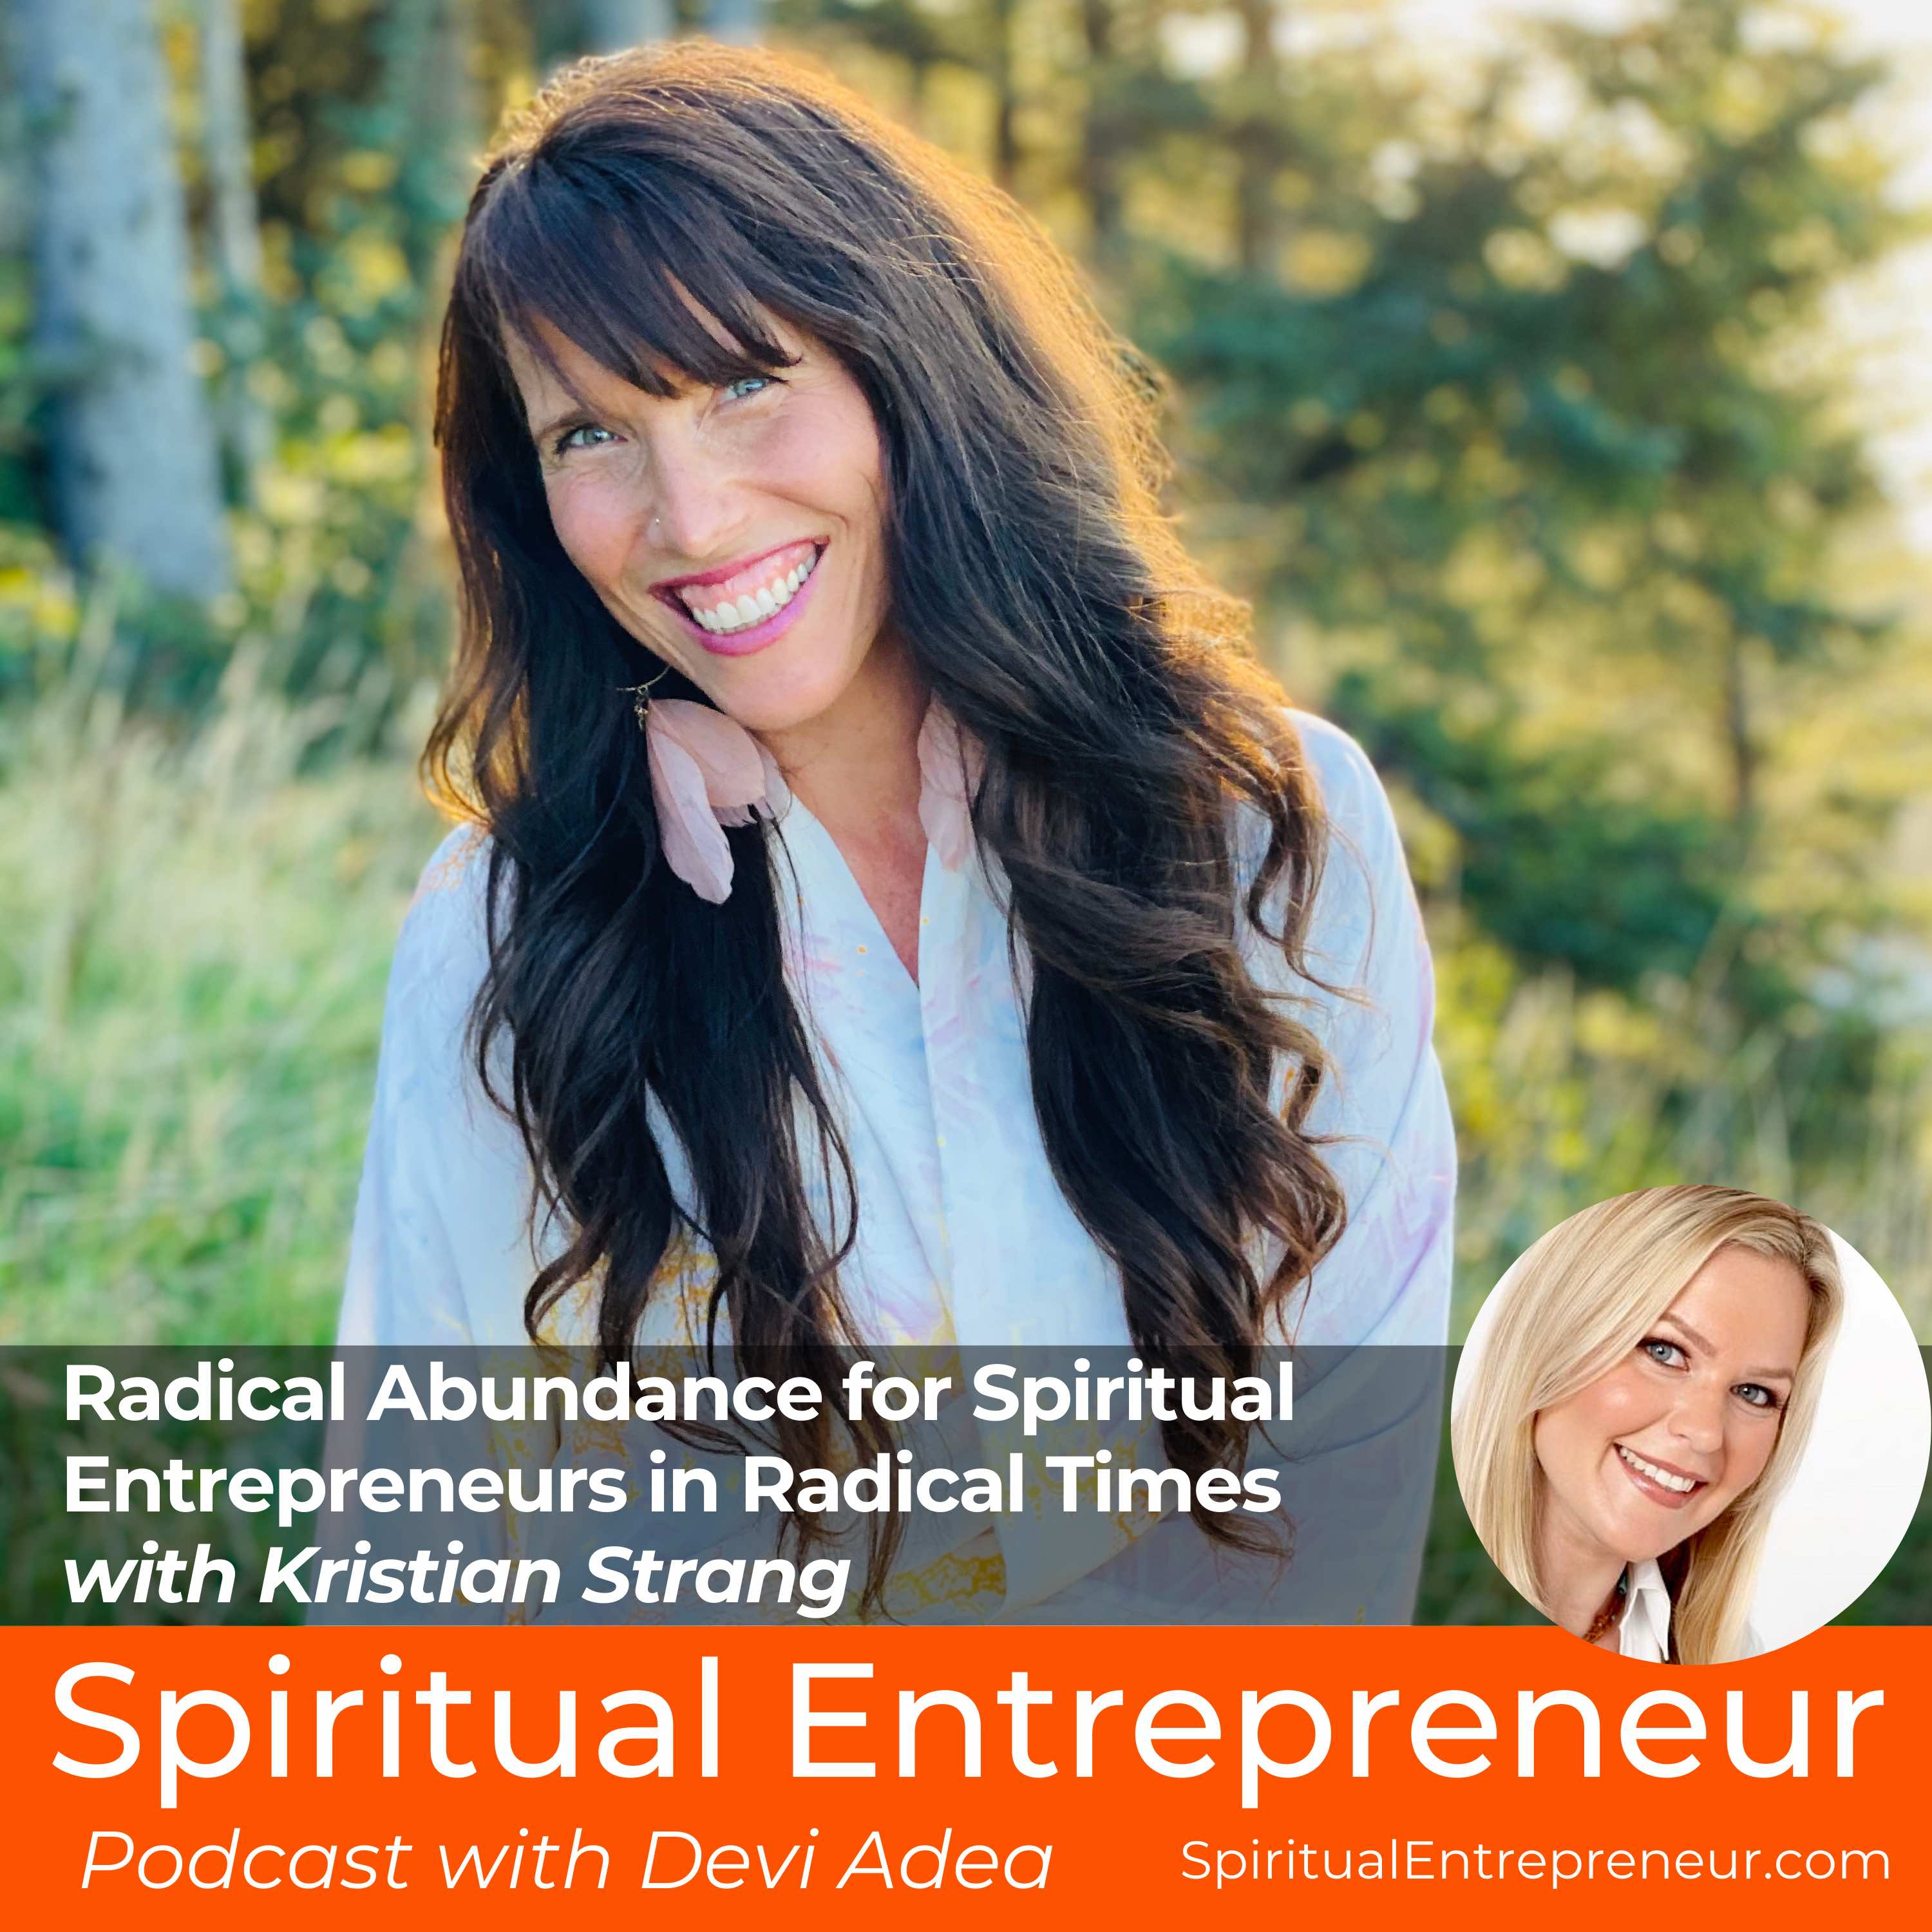 EP 260: Radical Abundance for Spiritual Entrepreneurs in Radical Times